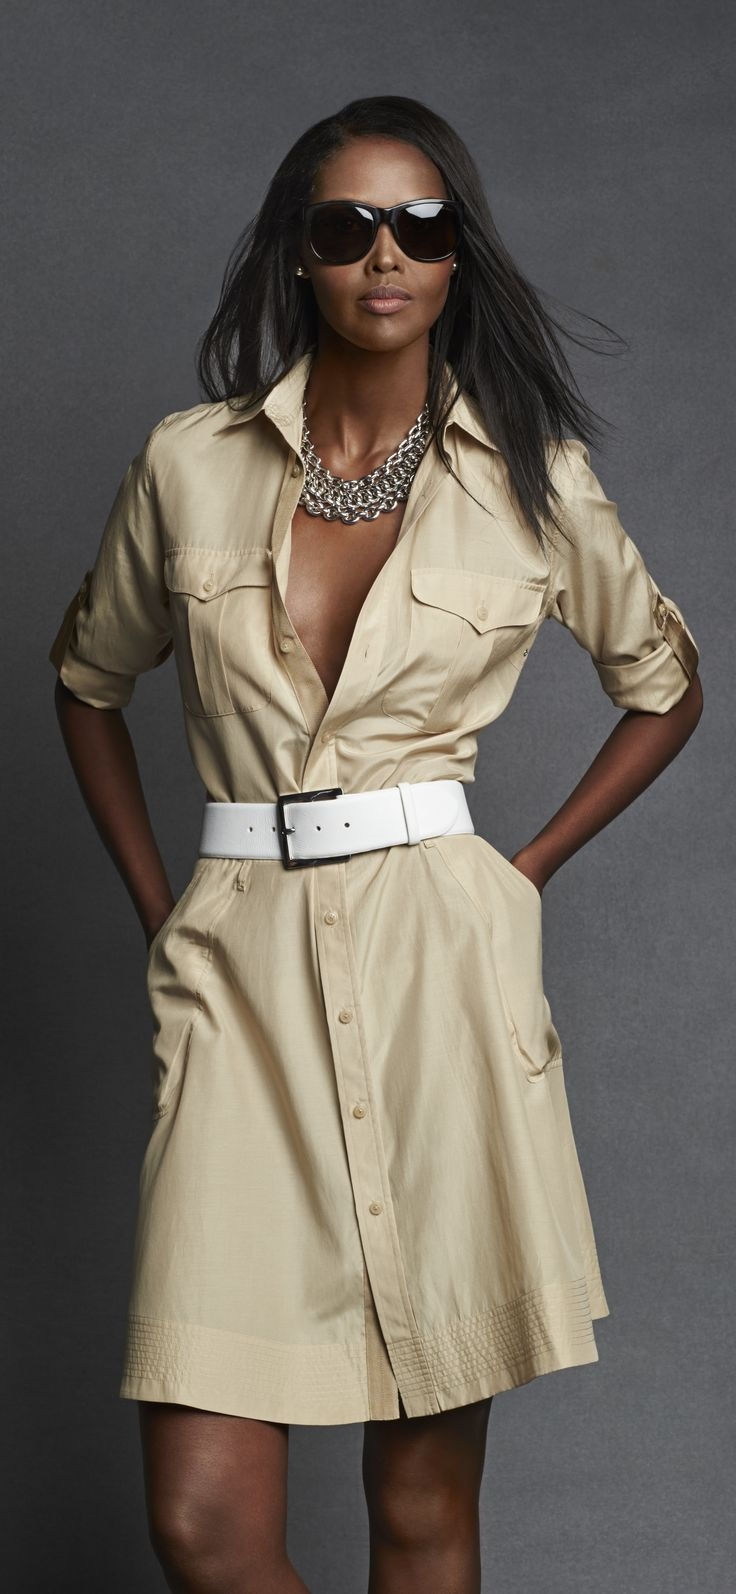 Ralph Lauren Black Label Safari Shirt Dress: Crafted from a lightweight silk-and-cotton blend